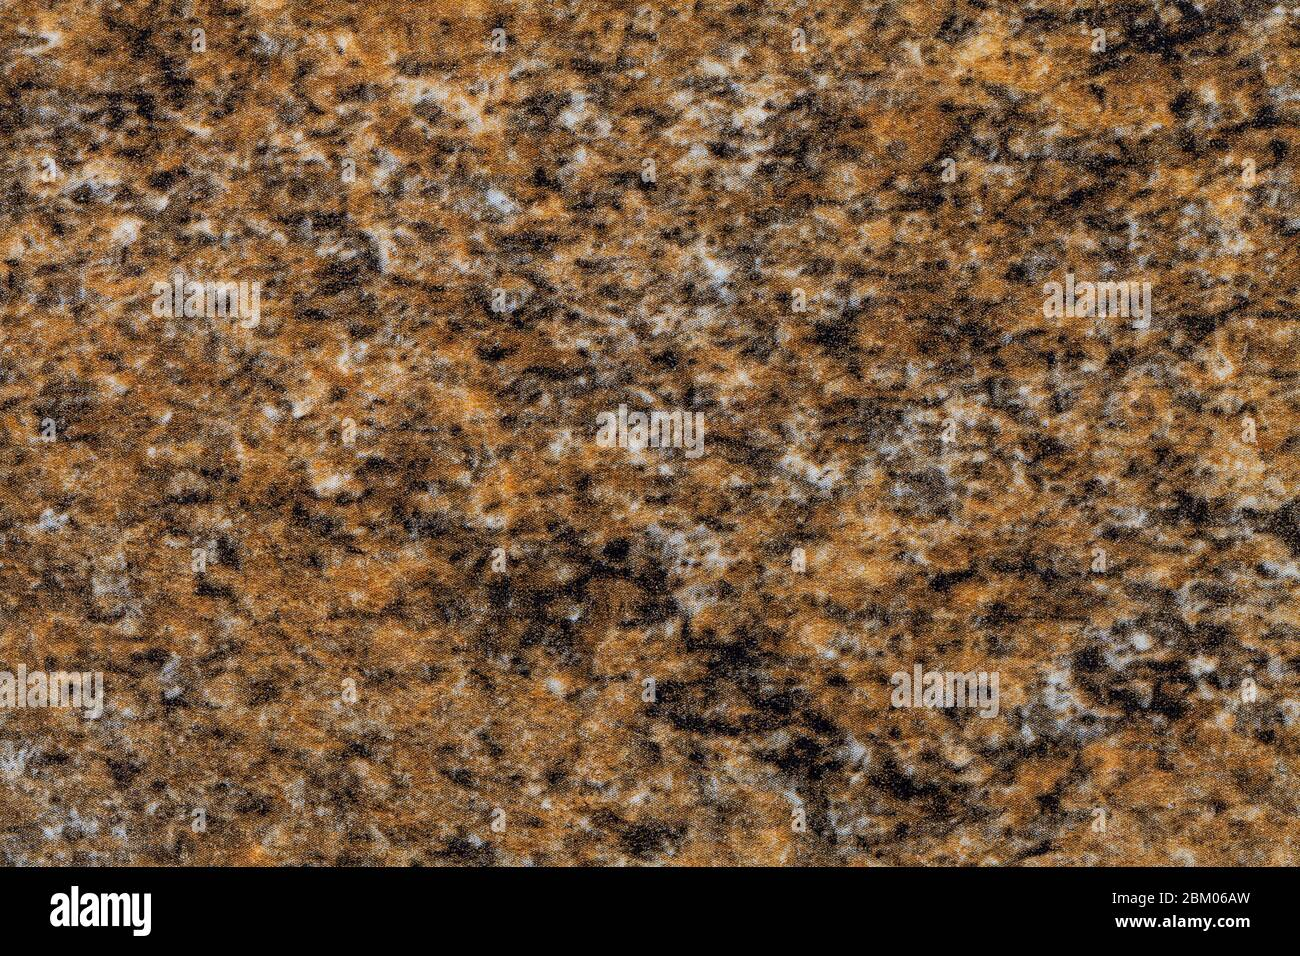 Grainy Dark Brown Background With Pink And Black Spots Texture Backdrop With Small Crumb Pattern For Interior Design And Kitchen Countertop Stock Photo Alamy